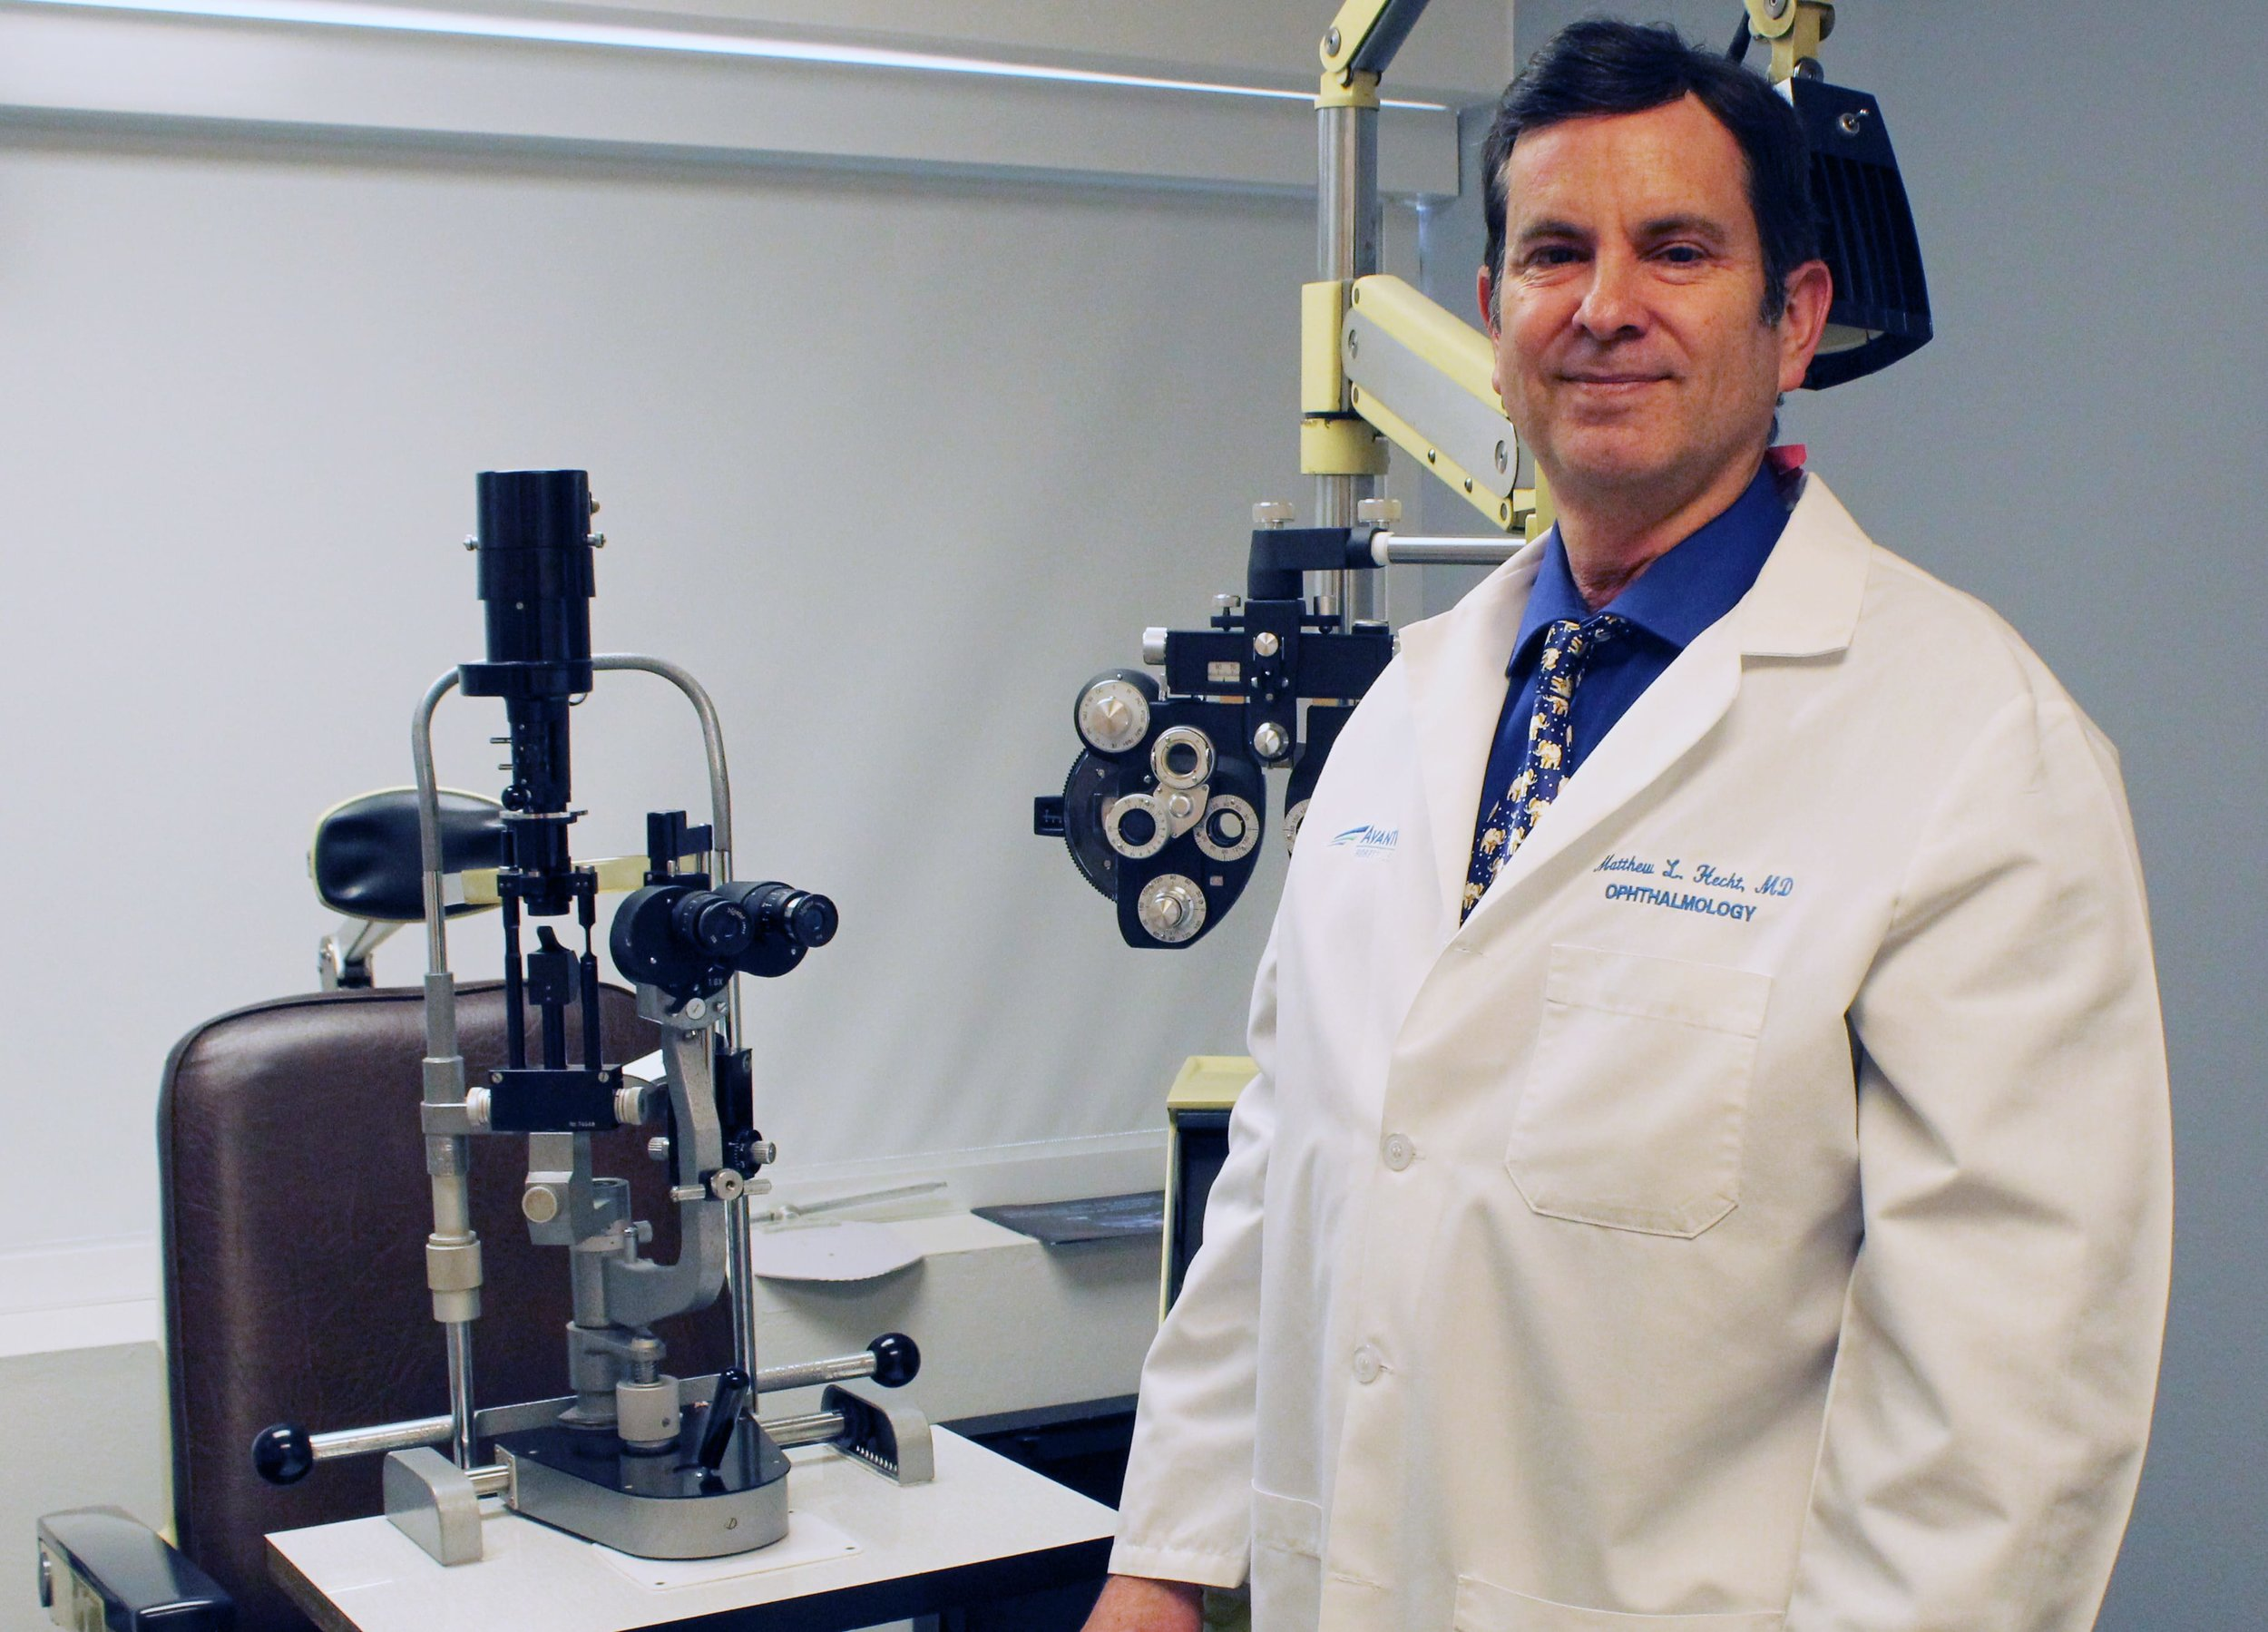 Matthew Hecht,M.D. is a Board Certified Ophthalmologist, Refractive Surgeon and Assistant Clinical Professor at UCLA.